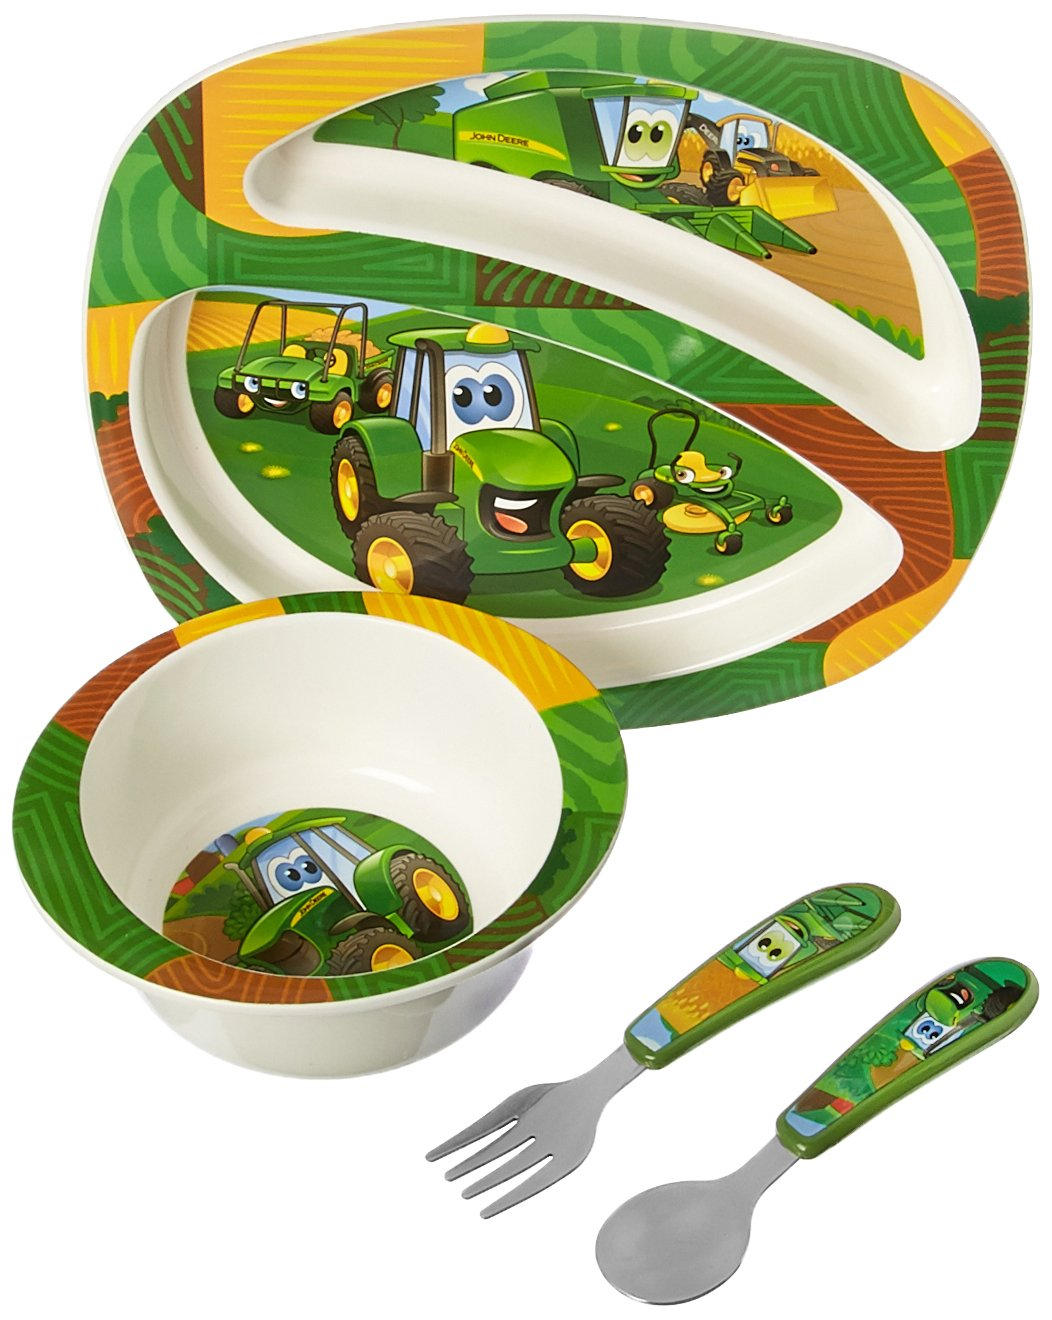 John Deere's Johnny Tractor and Friends Feeding 4 Piece Set, Green, Brown, Yellow, Blue, White, Red TOMY Corp Y10649A1